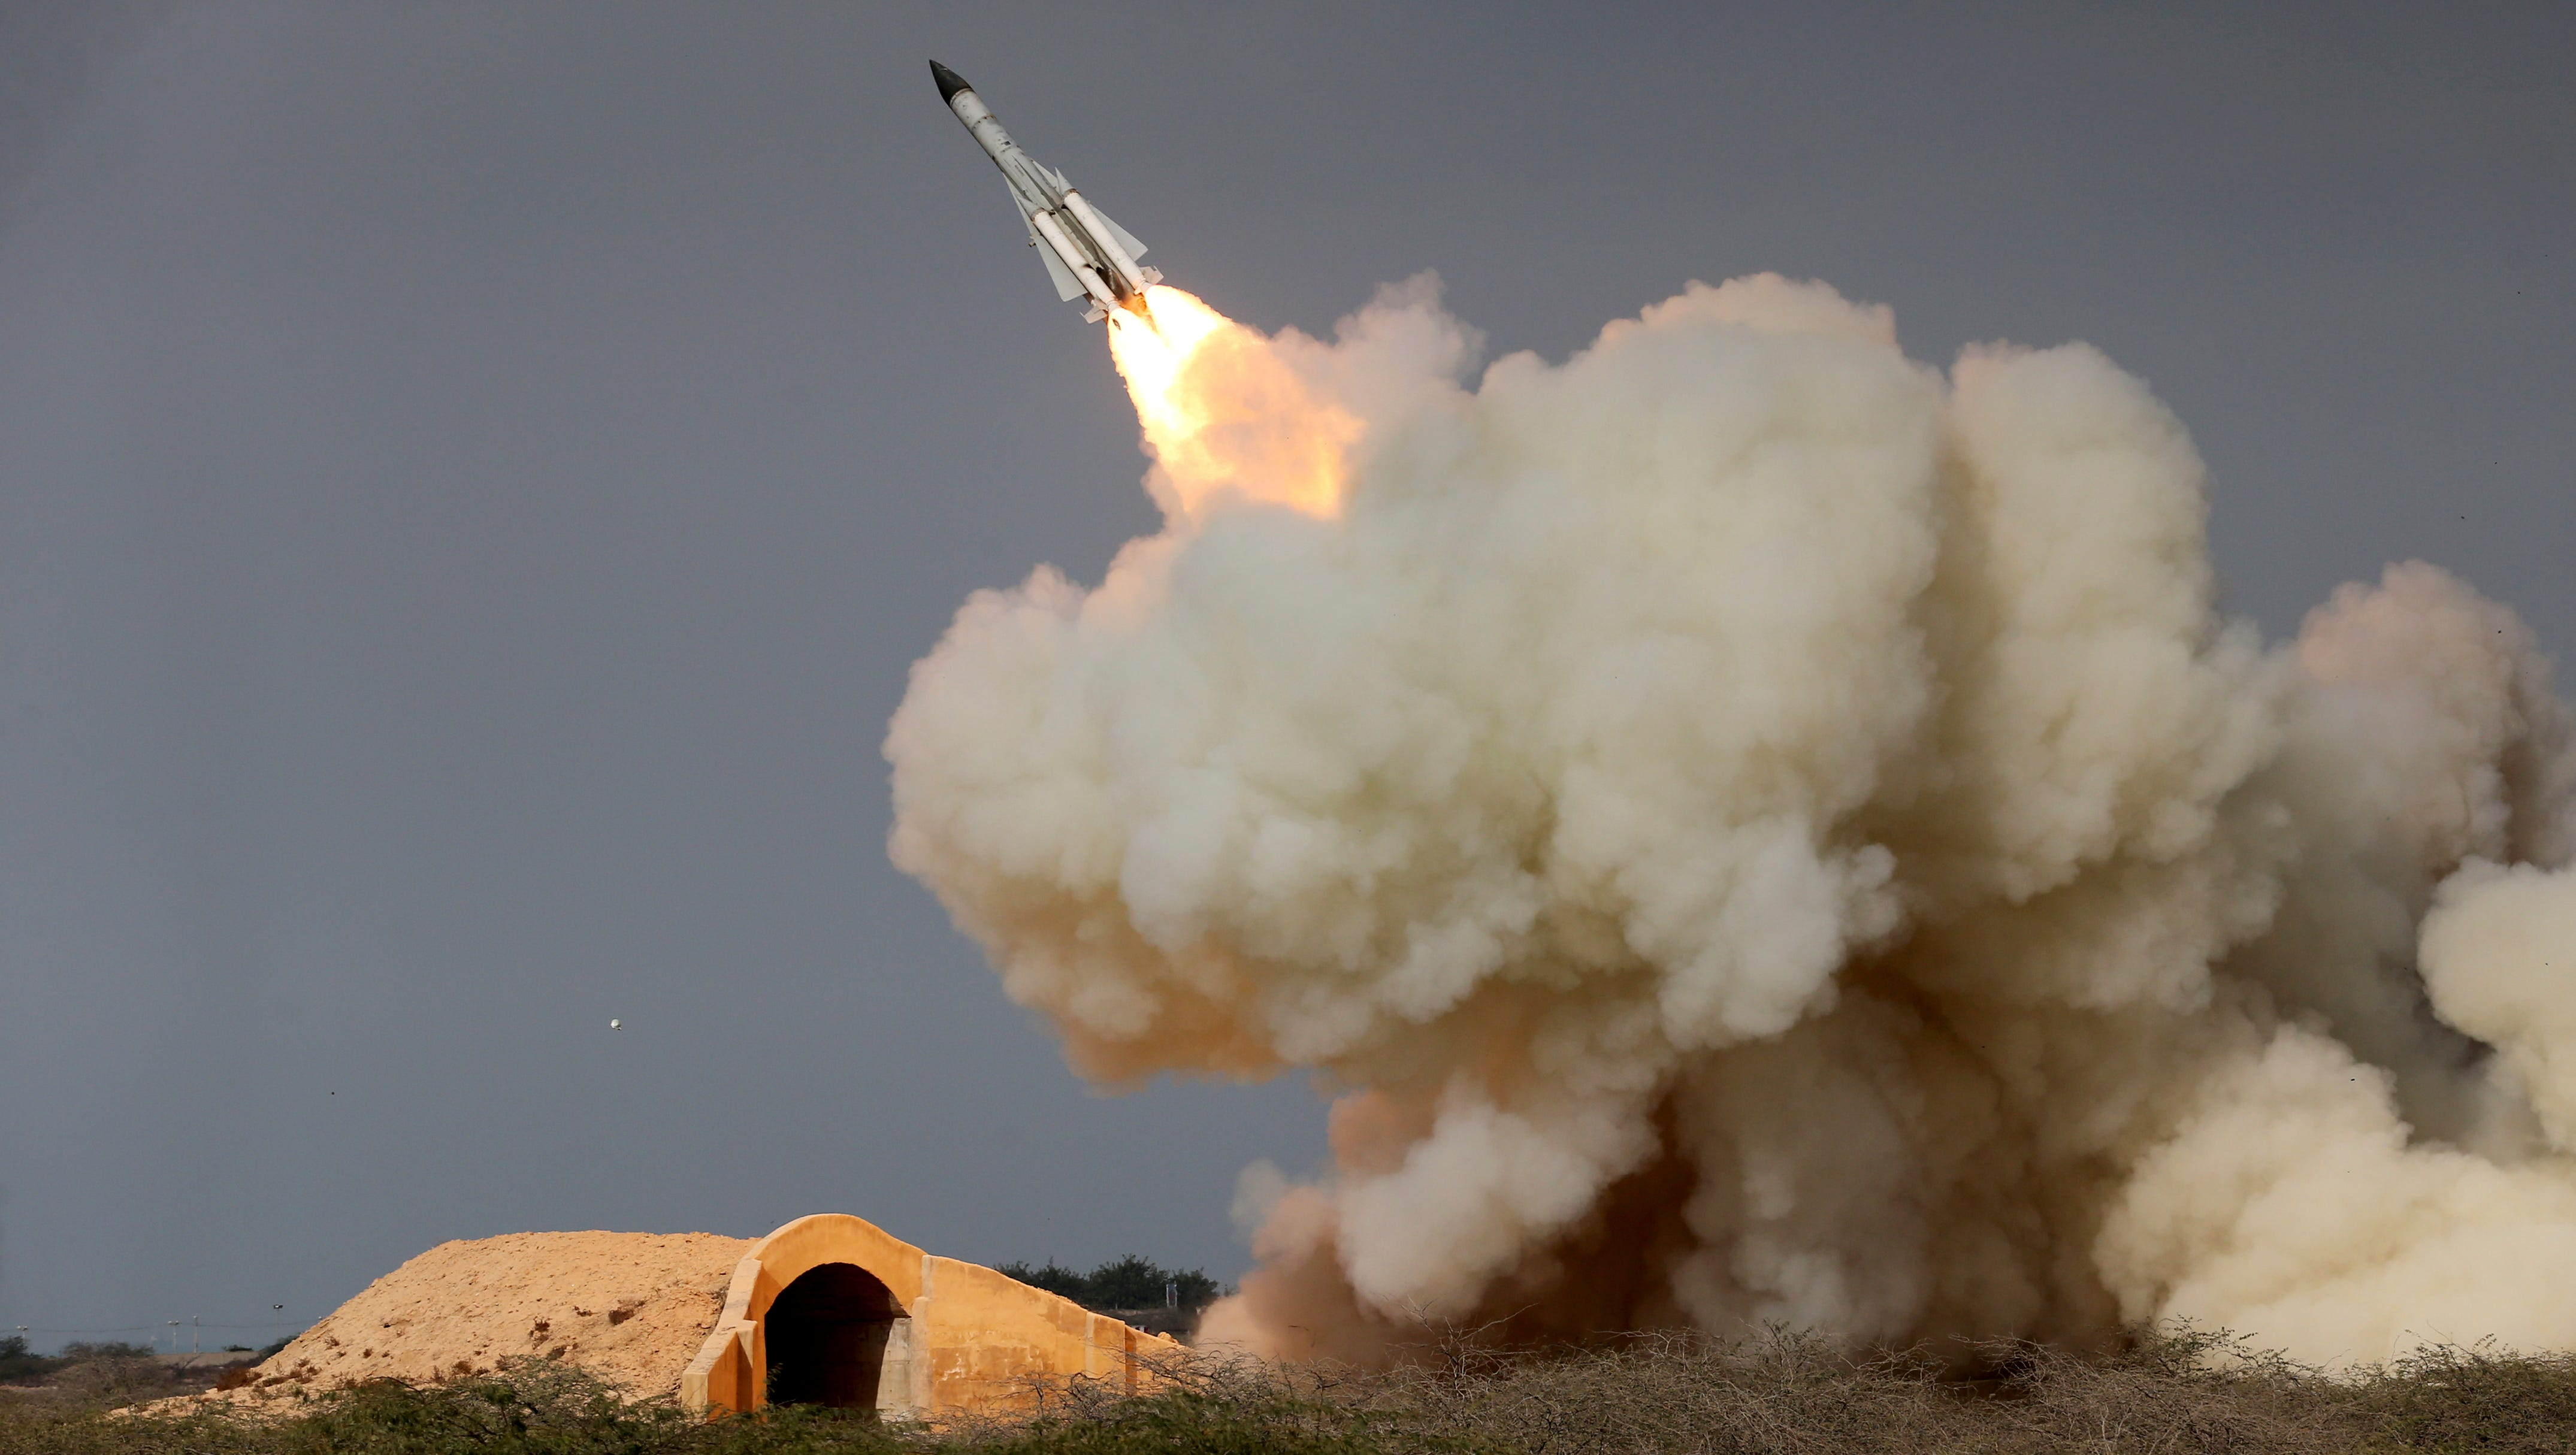 Iranian general confirms missile test